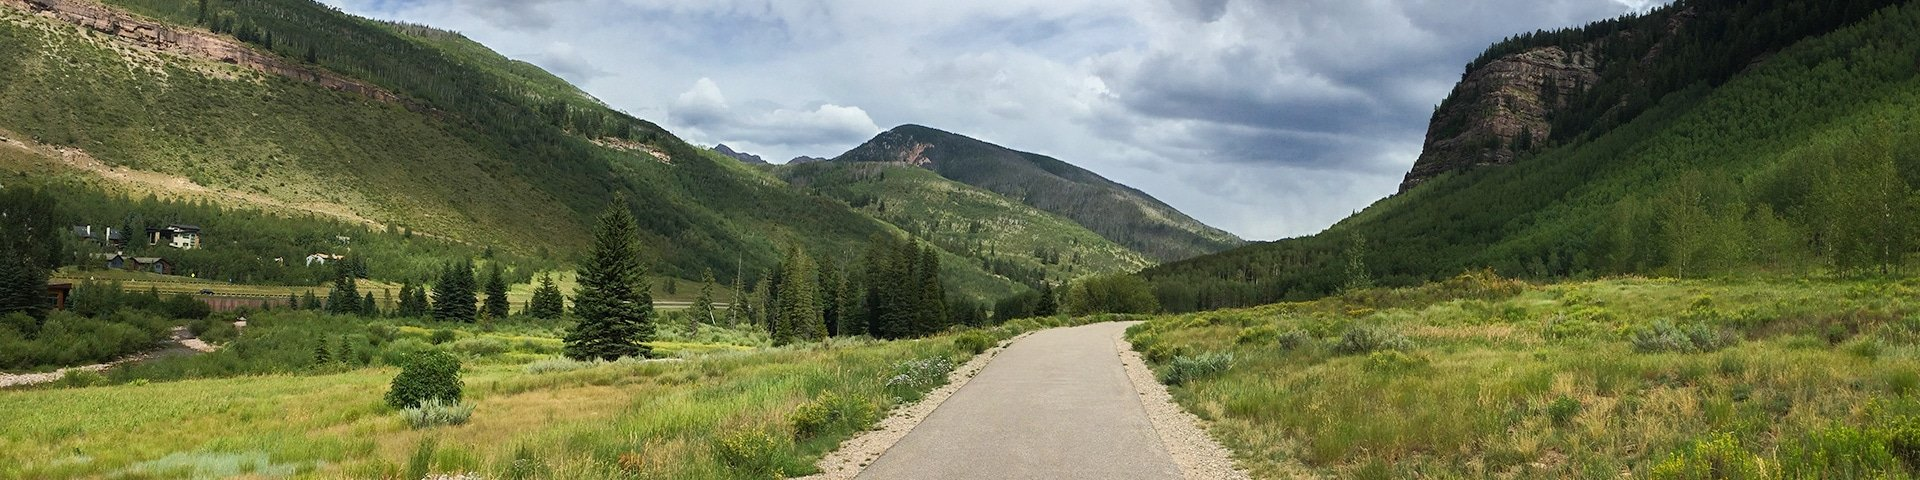 Panoramic views from the Gore Valley Trail hike near Vail, Colorado